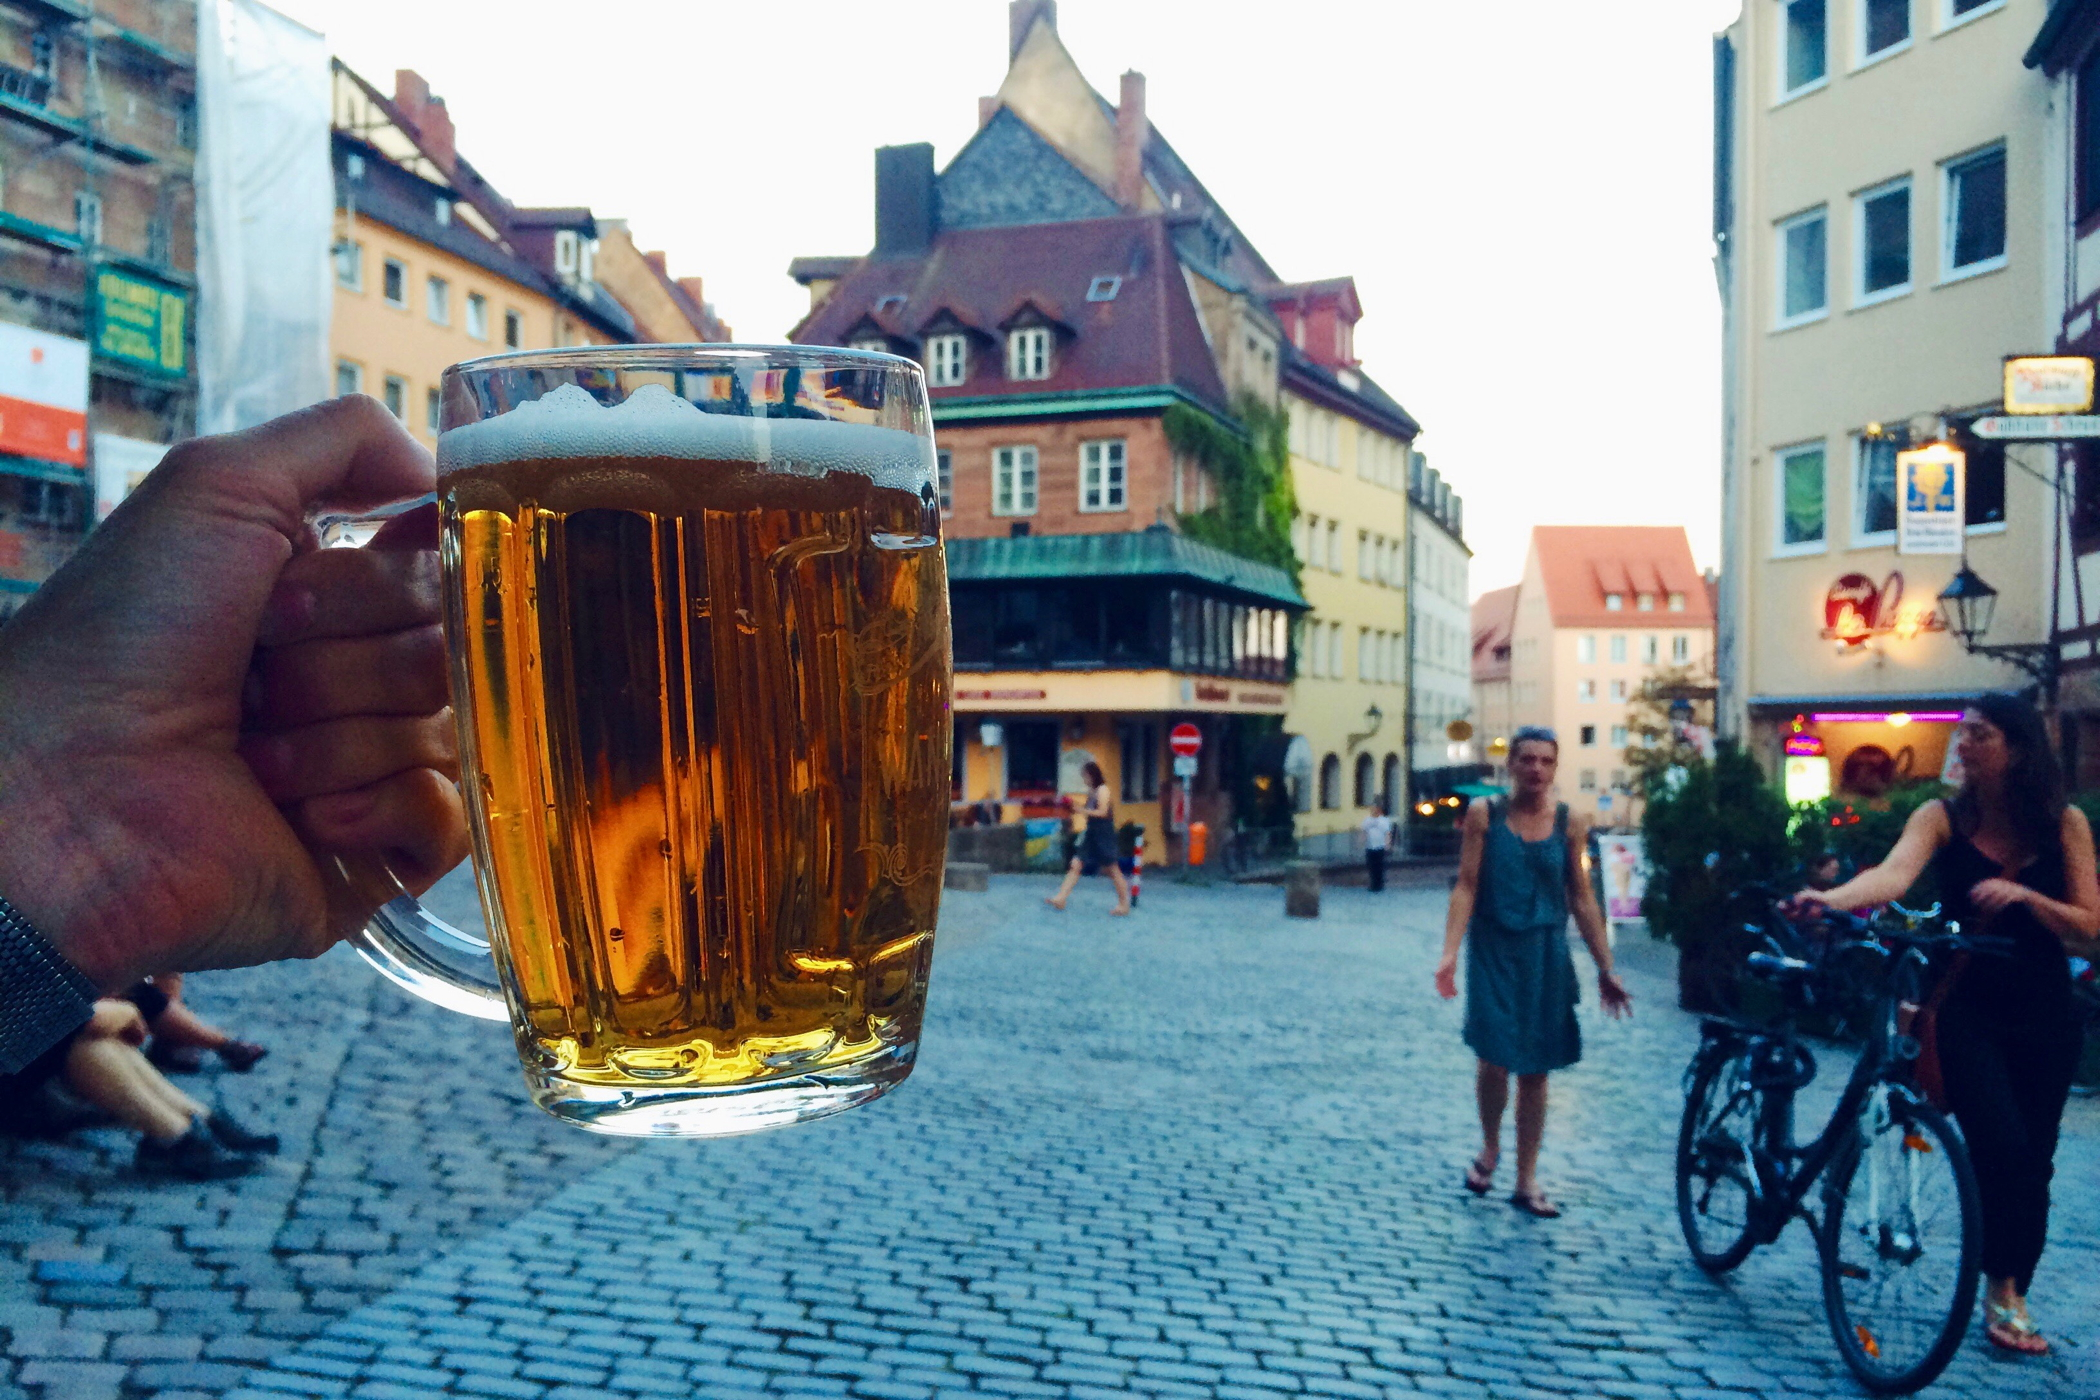 Nuremberg restaurants: Best Nuremberg sausage and beer